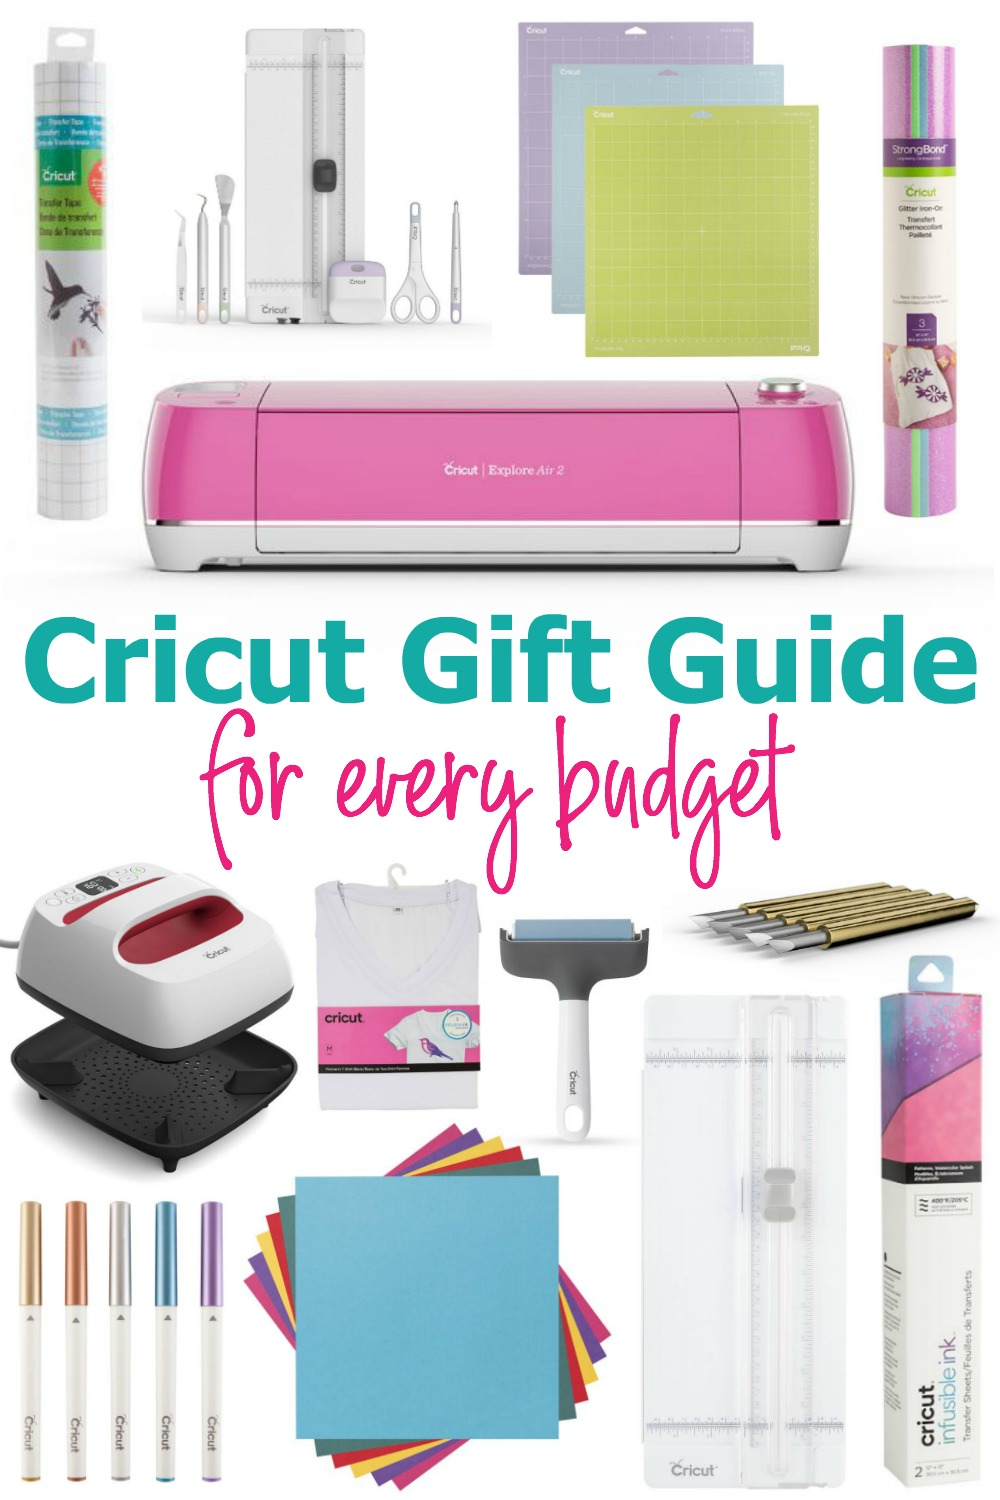 Cricut Gift Guide for Every Budget